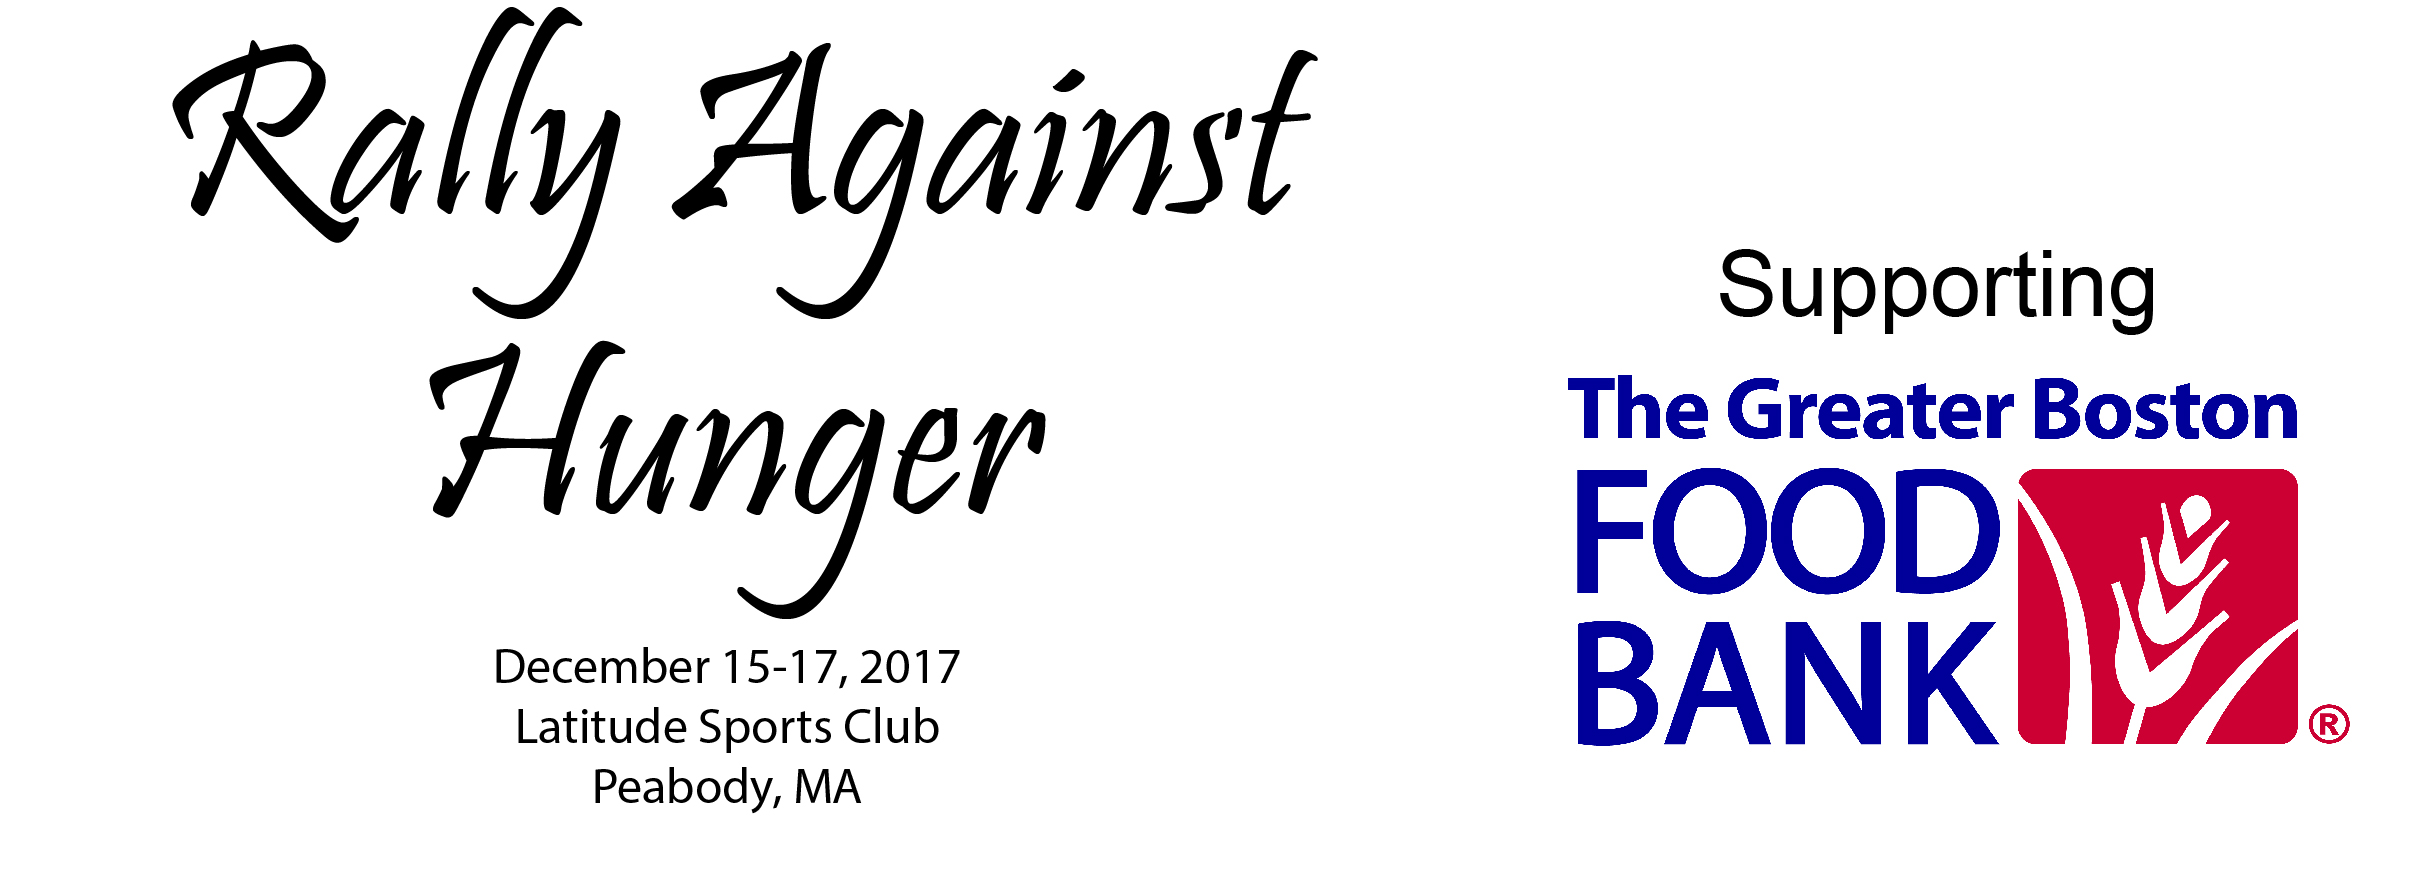 2017 Rally Against Hunger Racquetball Tournament